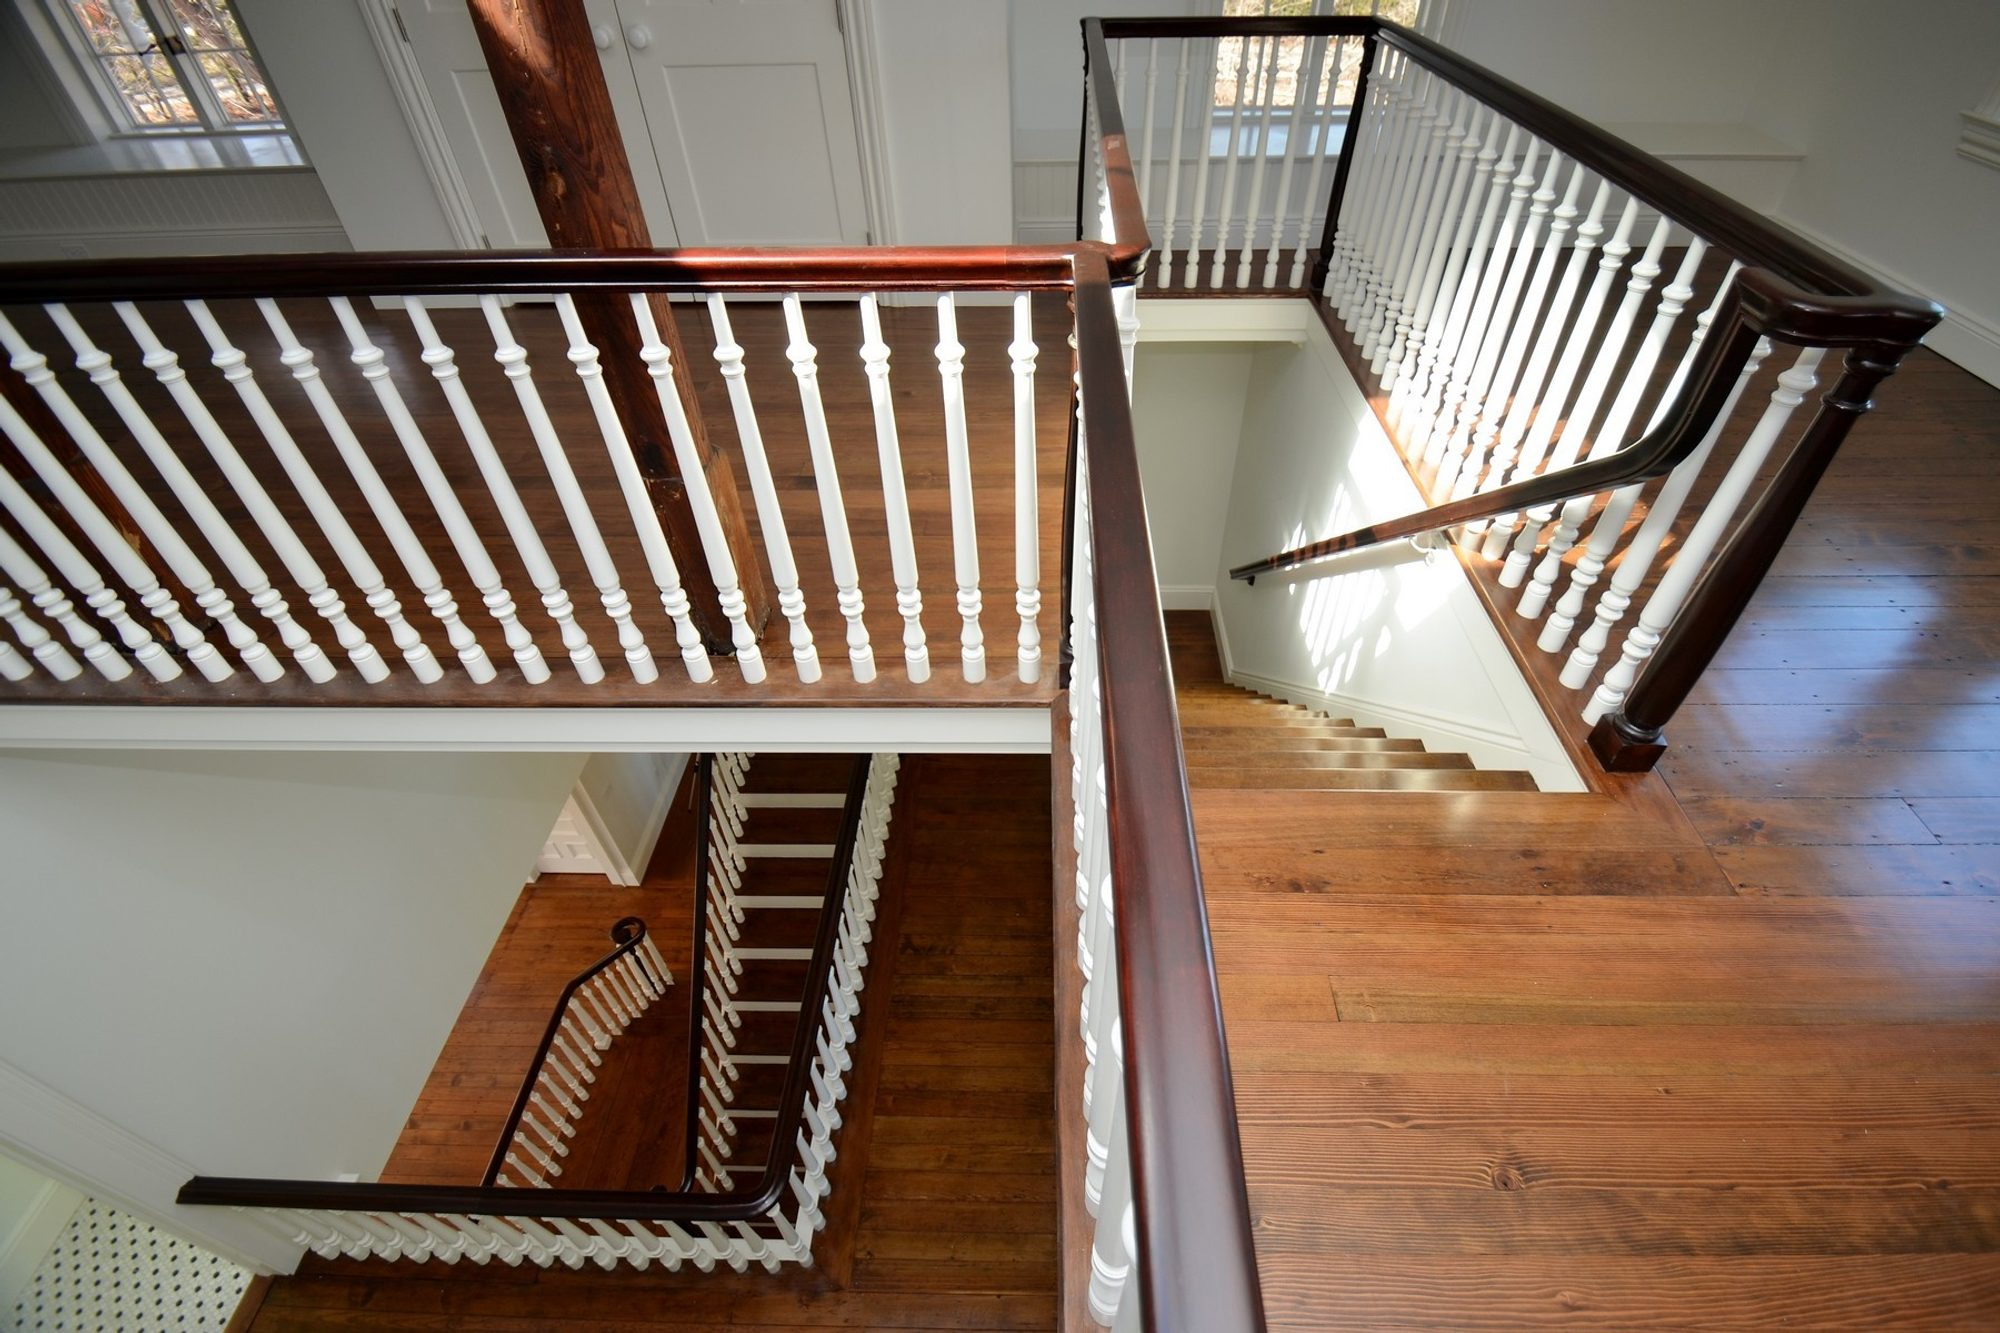 Natural wide plank hardwood floors stained a medium dark brown. Matching wood stairs.